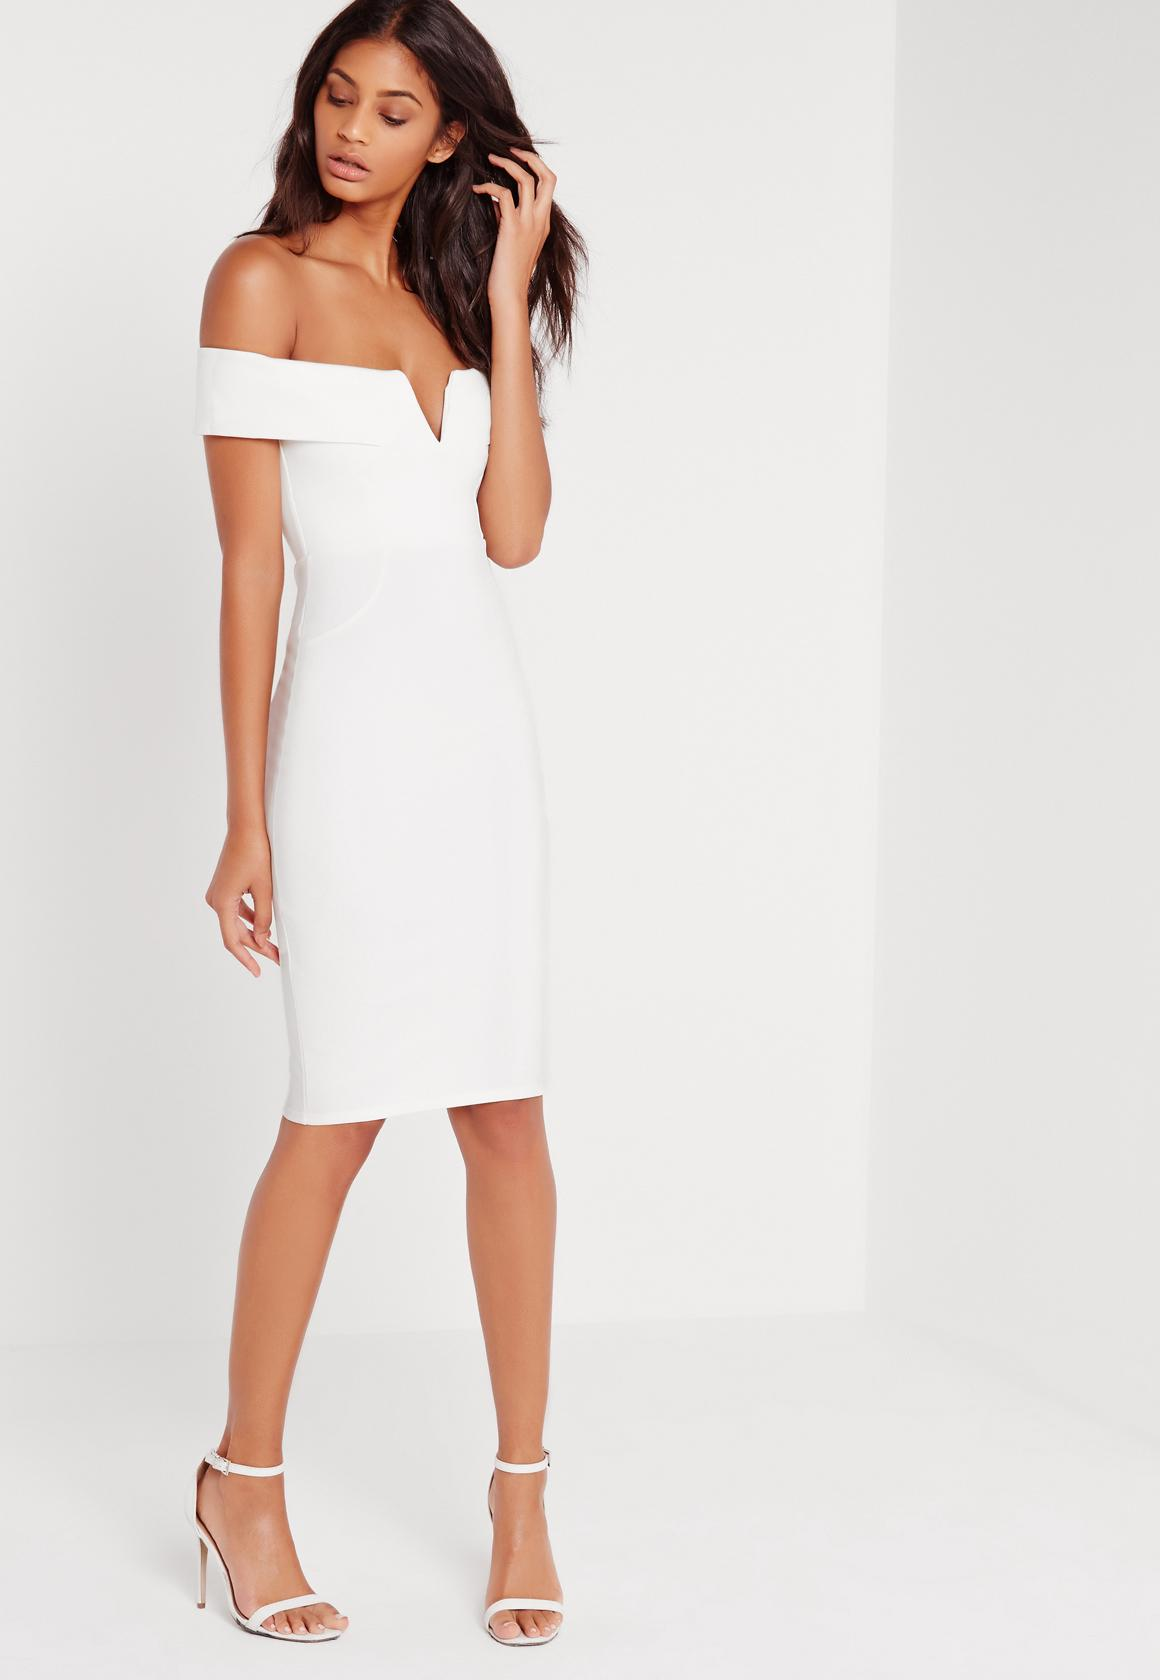 Cocktail Dresses | Elegant & Black Tie Dresses - Missguided